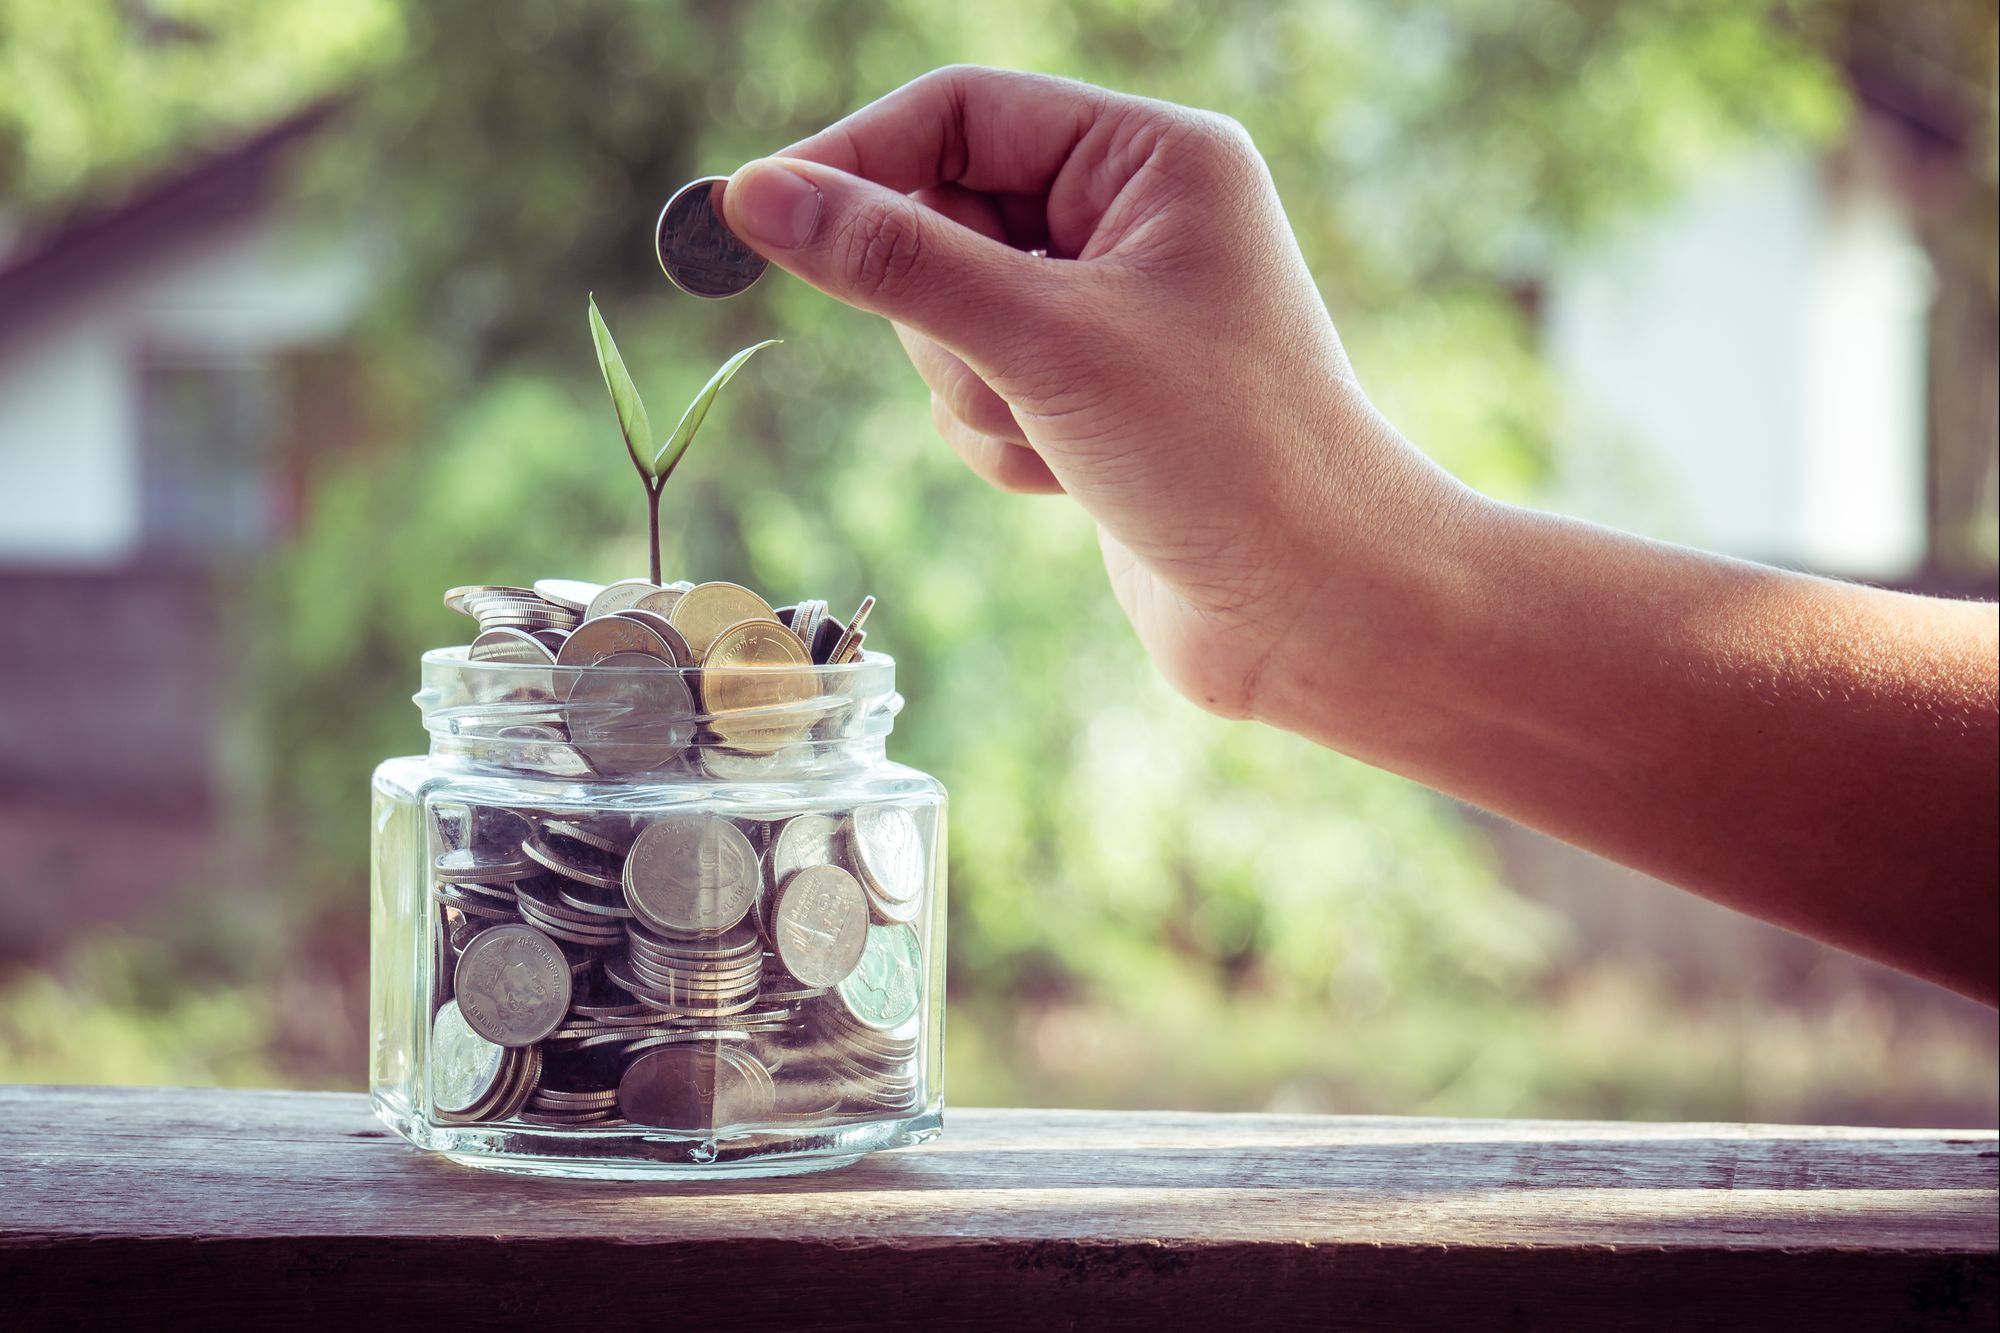 5 Ways To Earn Extra Money, Even if You Have a Full-Time Job